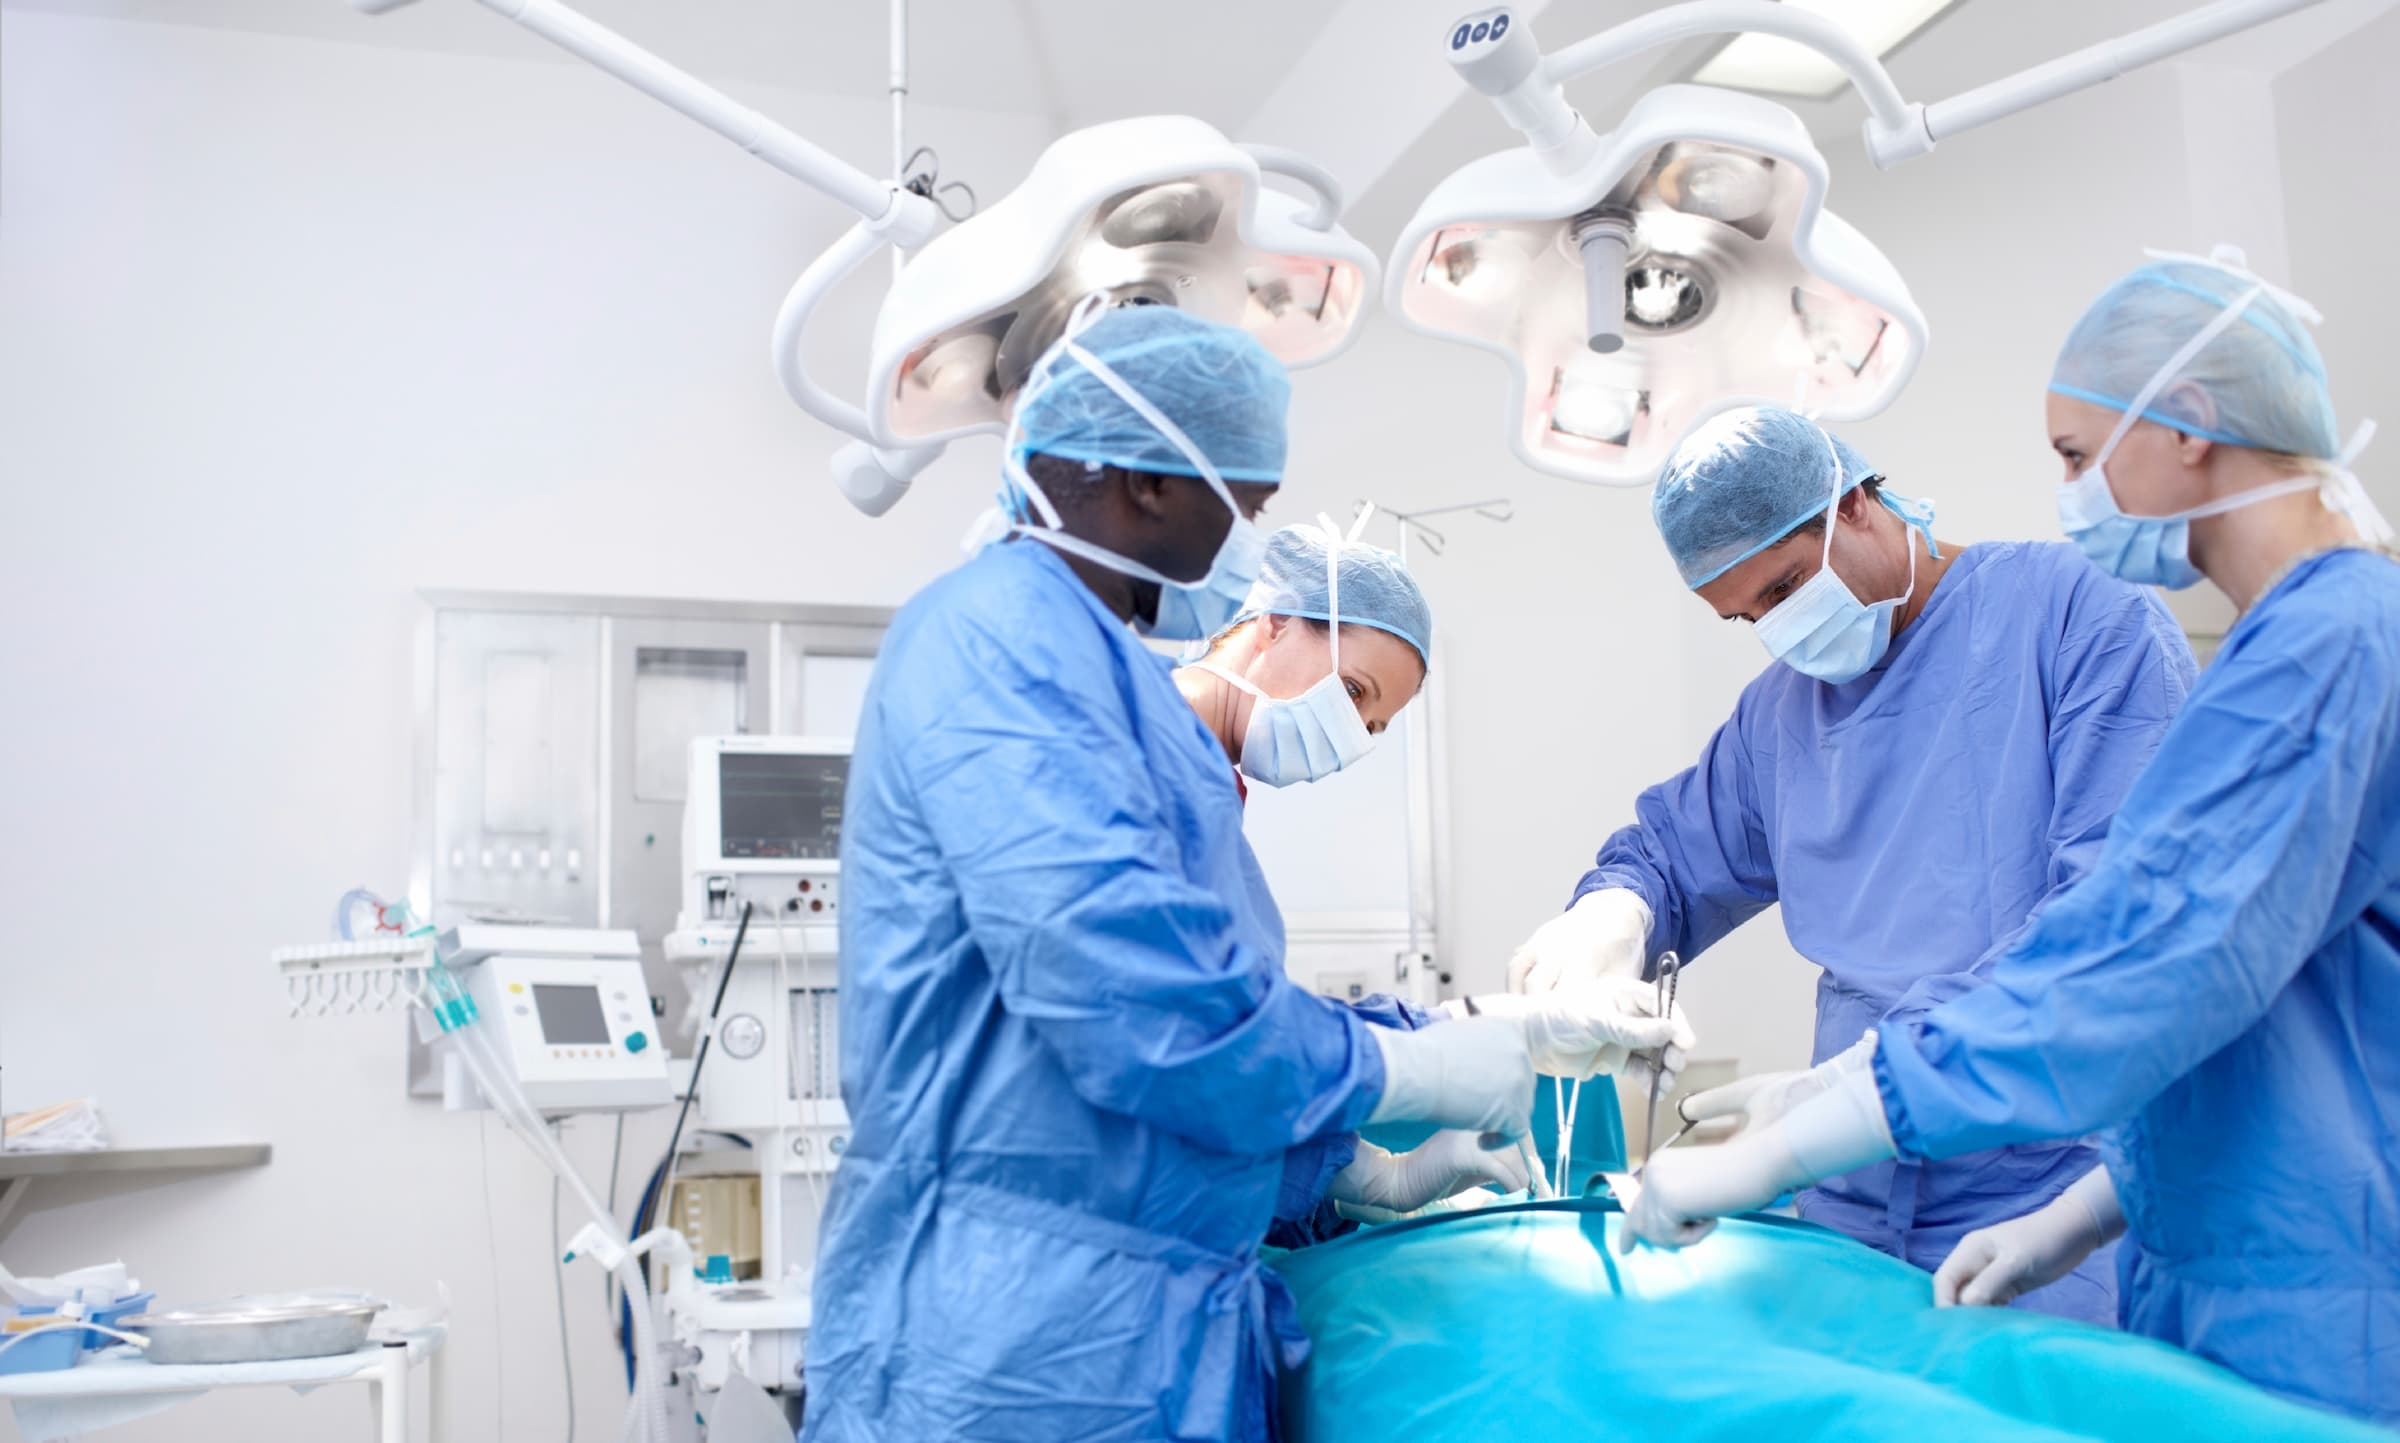 diverse doctors (black, white, hispanic, white) doing surgery in blue scrubs and surgical gear, leaning over patient on the table